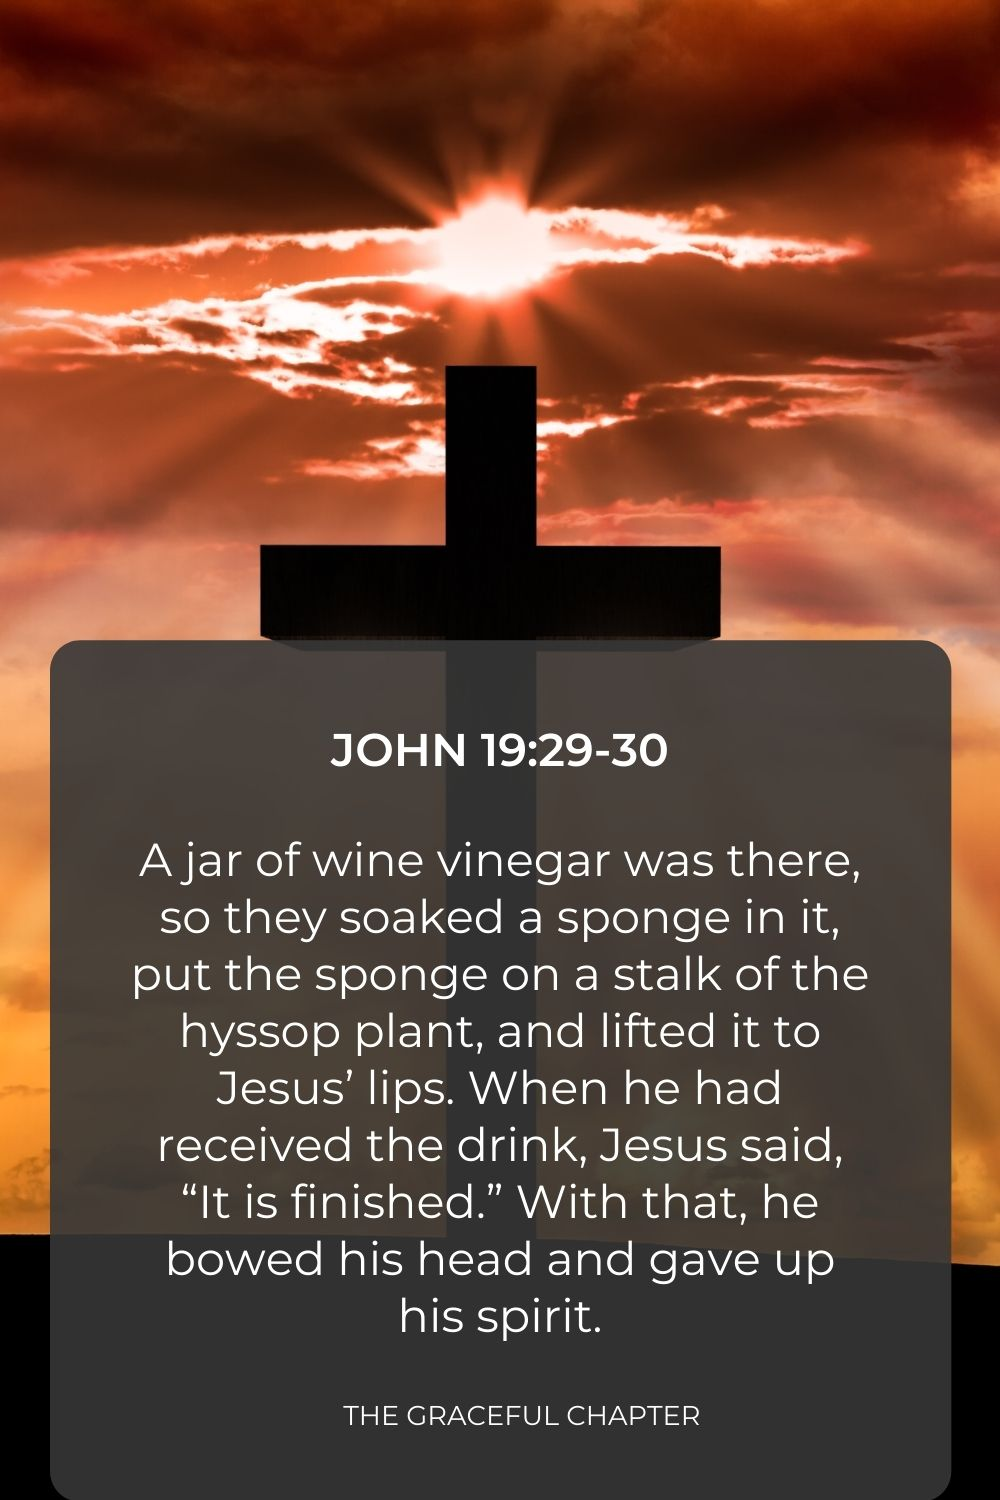 """A jar of wine vinegar was there, so they soaked a sponge in it, put the sponge on a stalk of the hyssop plant, and lifted it to Jesus' lips. When he had received the drink, Jesus said, """"It is finished."""" With that, he bowed his head and gave up his spirit. John 19:29-30"""